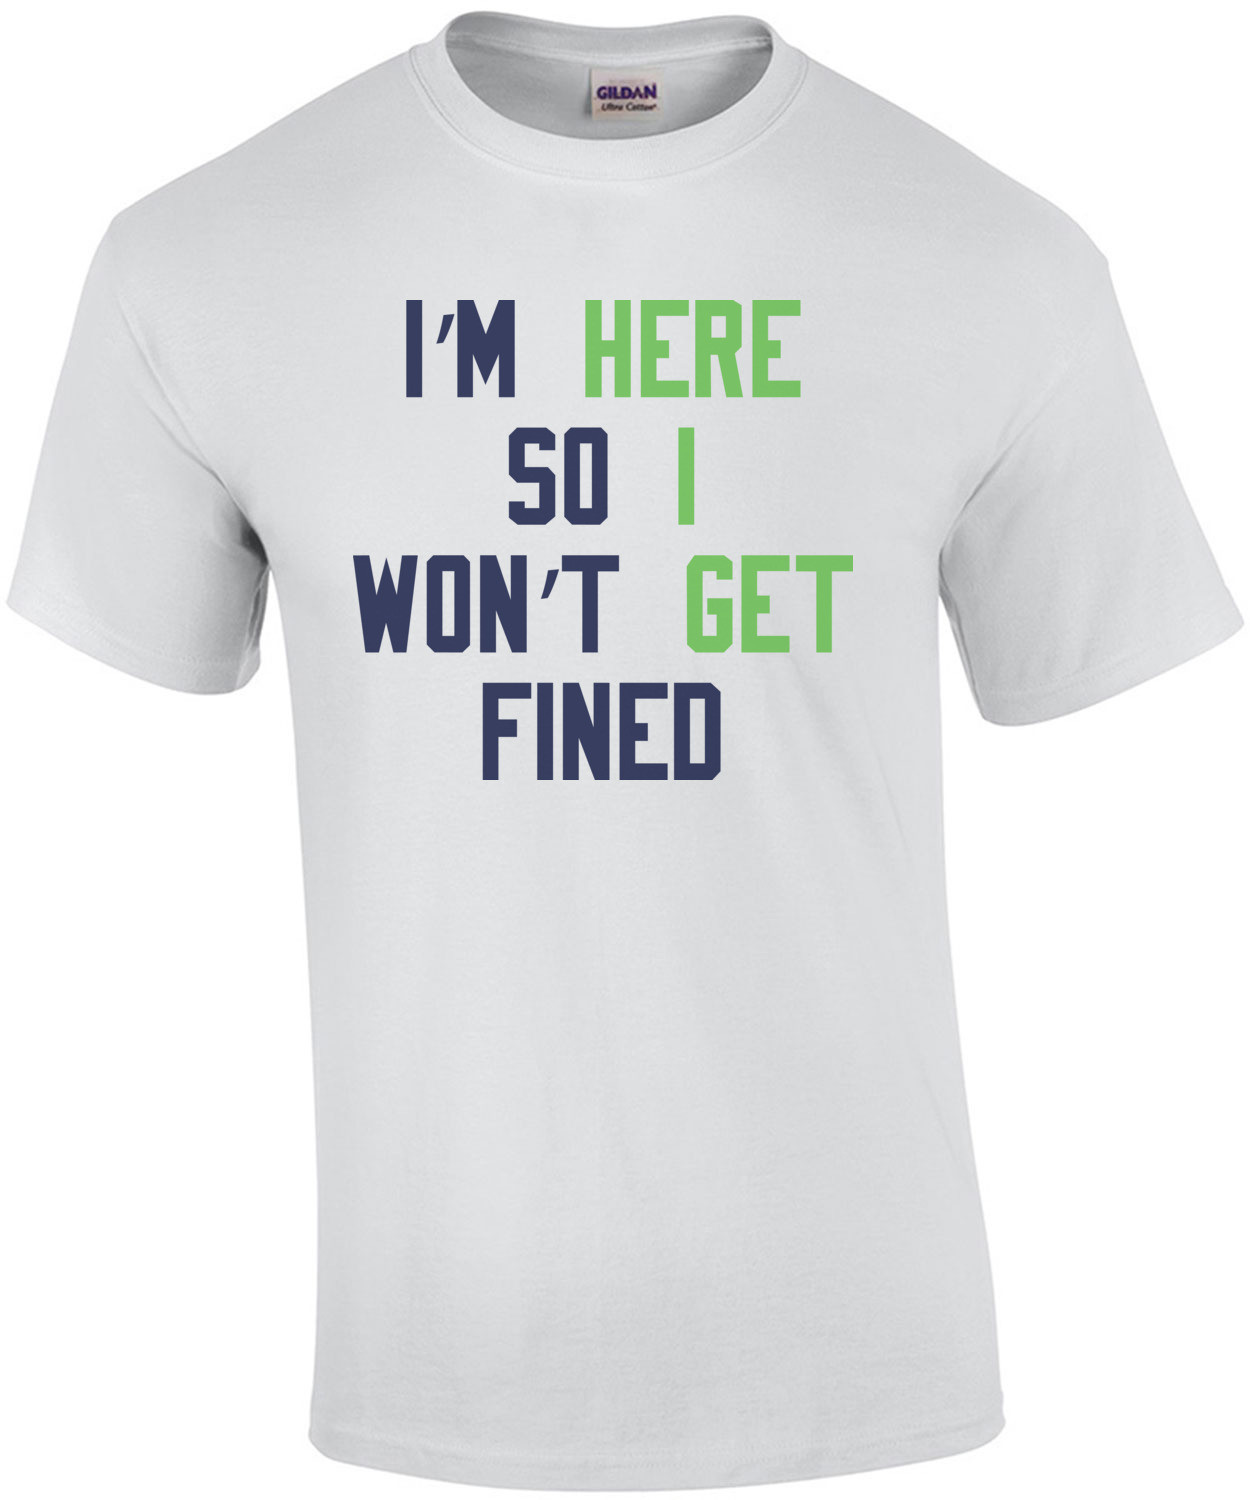 I'm Here So I won't Get Fined T-Shirt